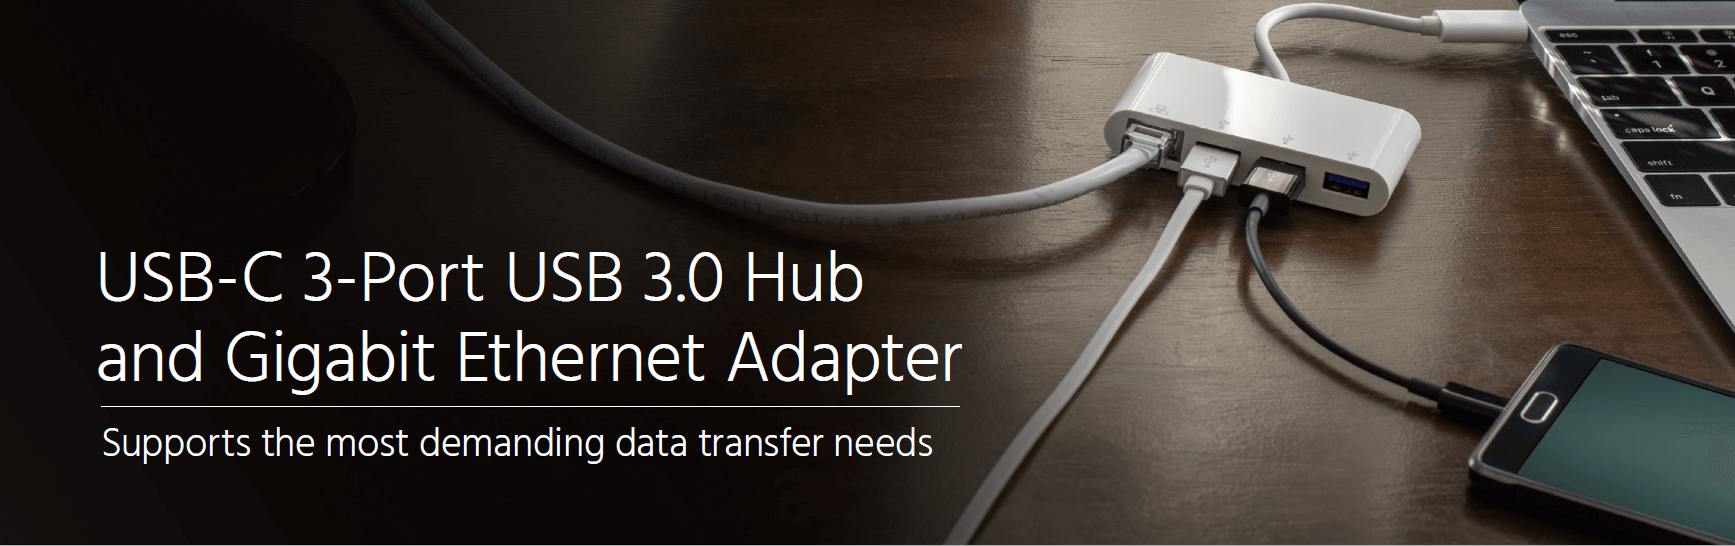 USB-C 3-Port USB 3.0 Hub and Gigabit Ethernet Adapter